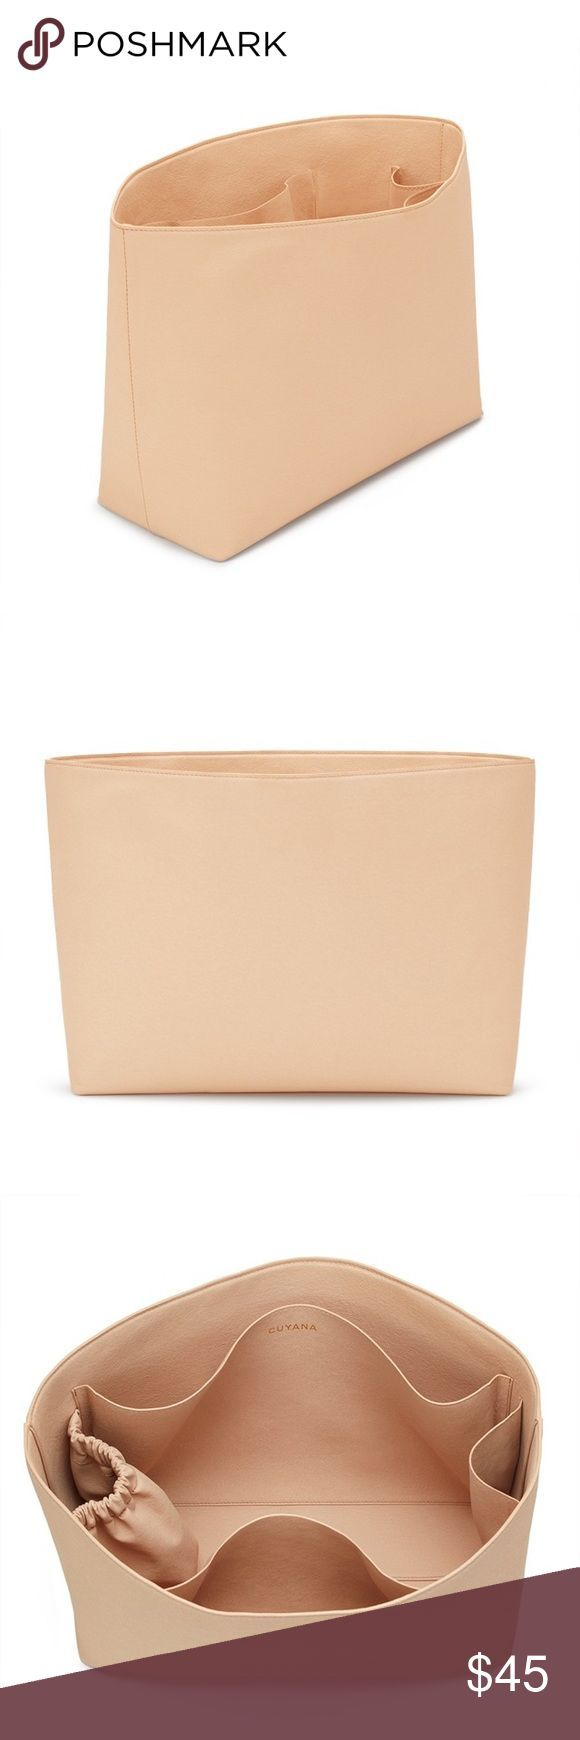 Cuyana tote organizer Super nice tote organizer from cuyana. They make high qual#Eyes